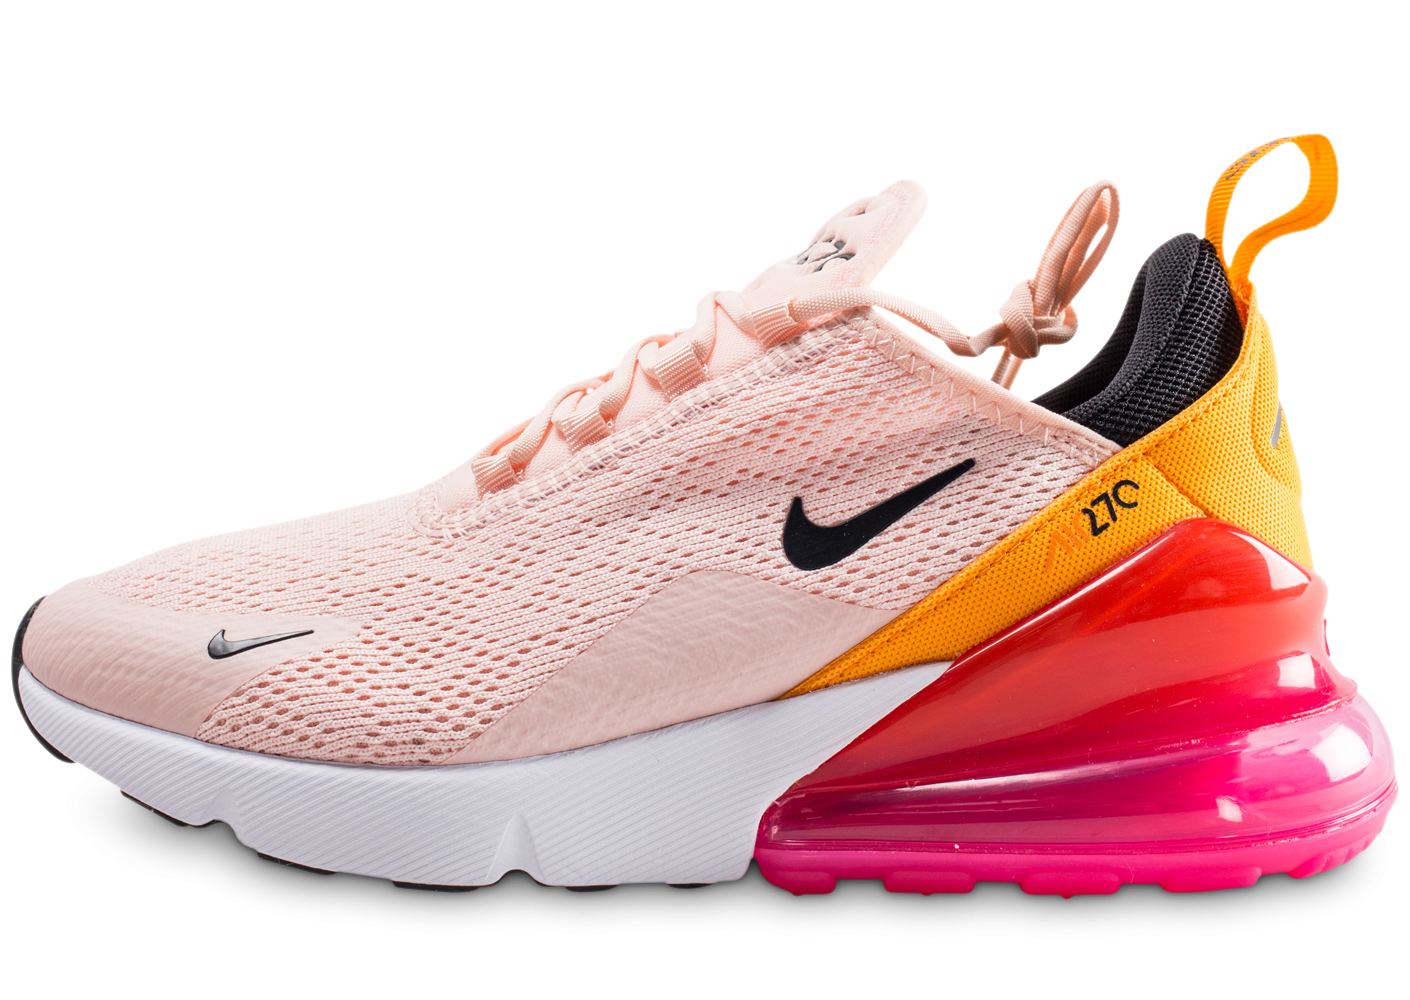 air max 270 femme blanche et orange